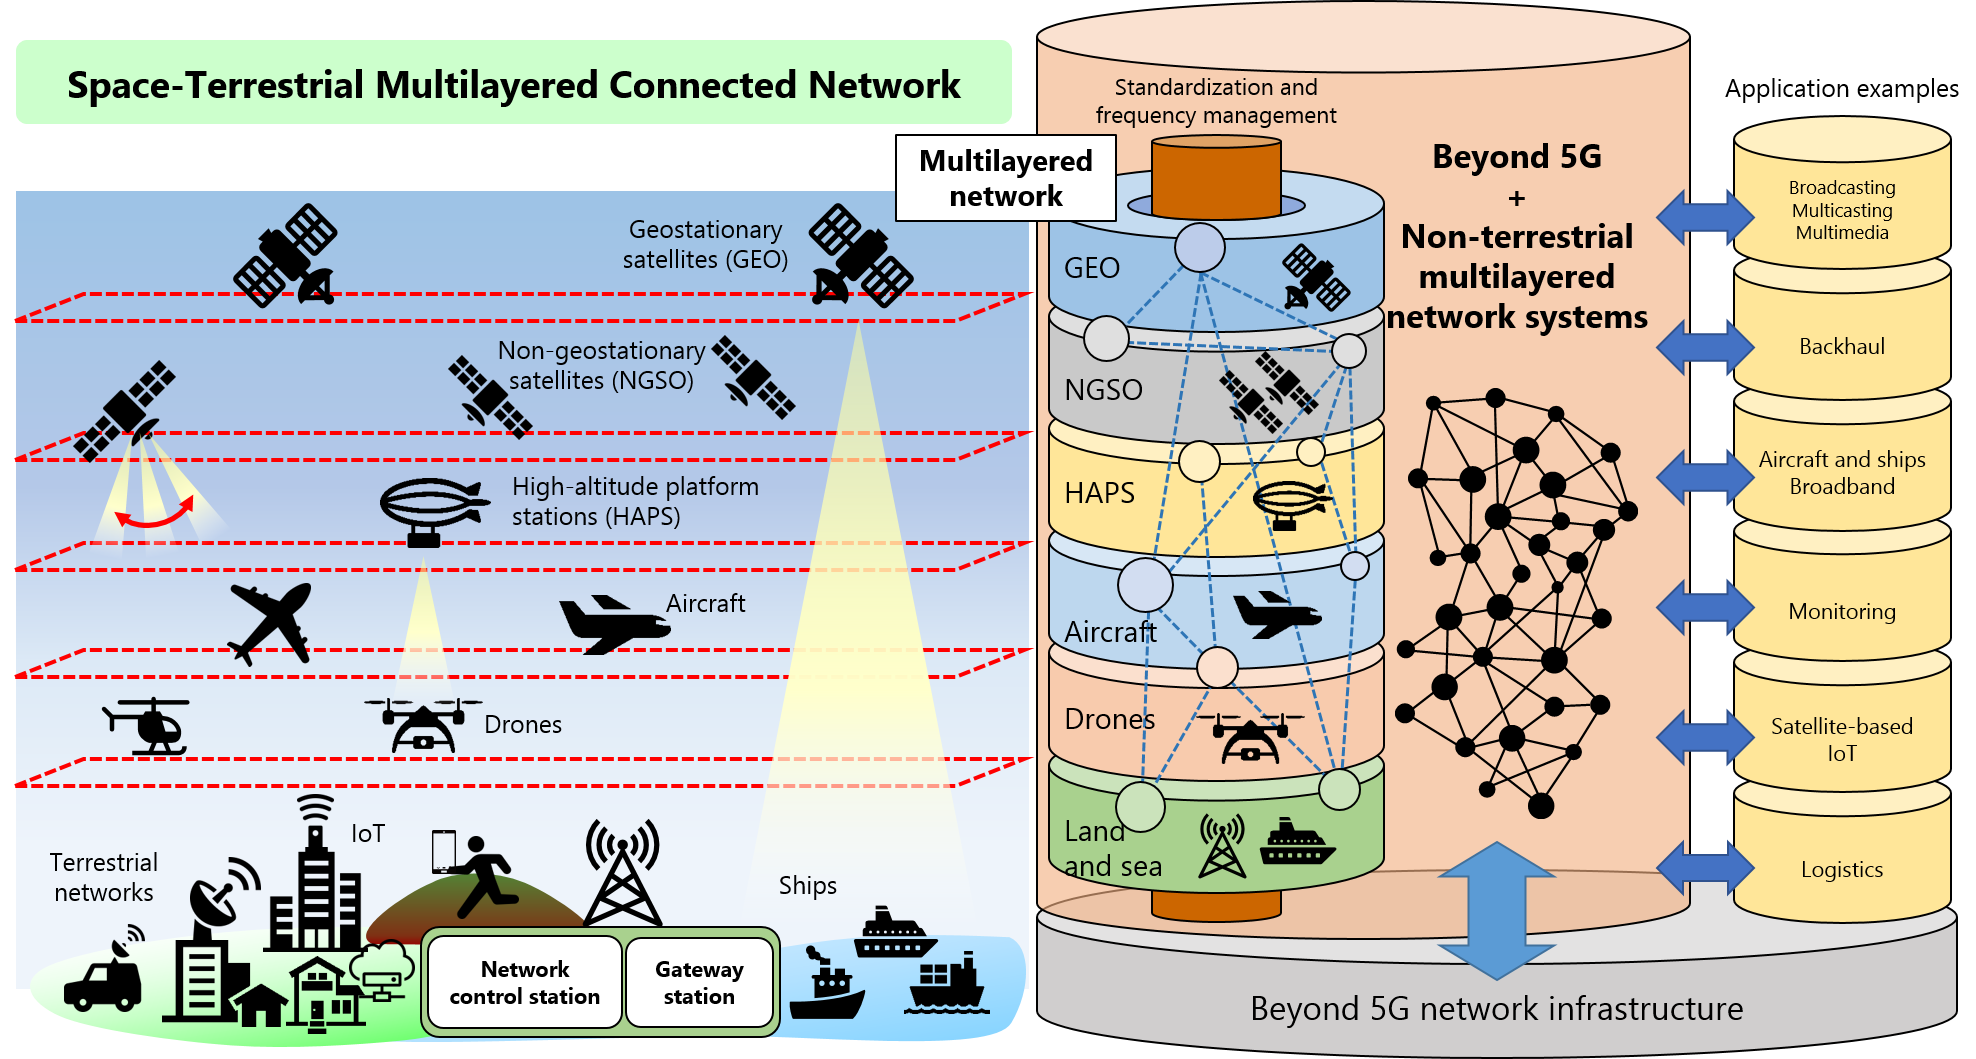 space-terrestrial multilayered connected network